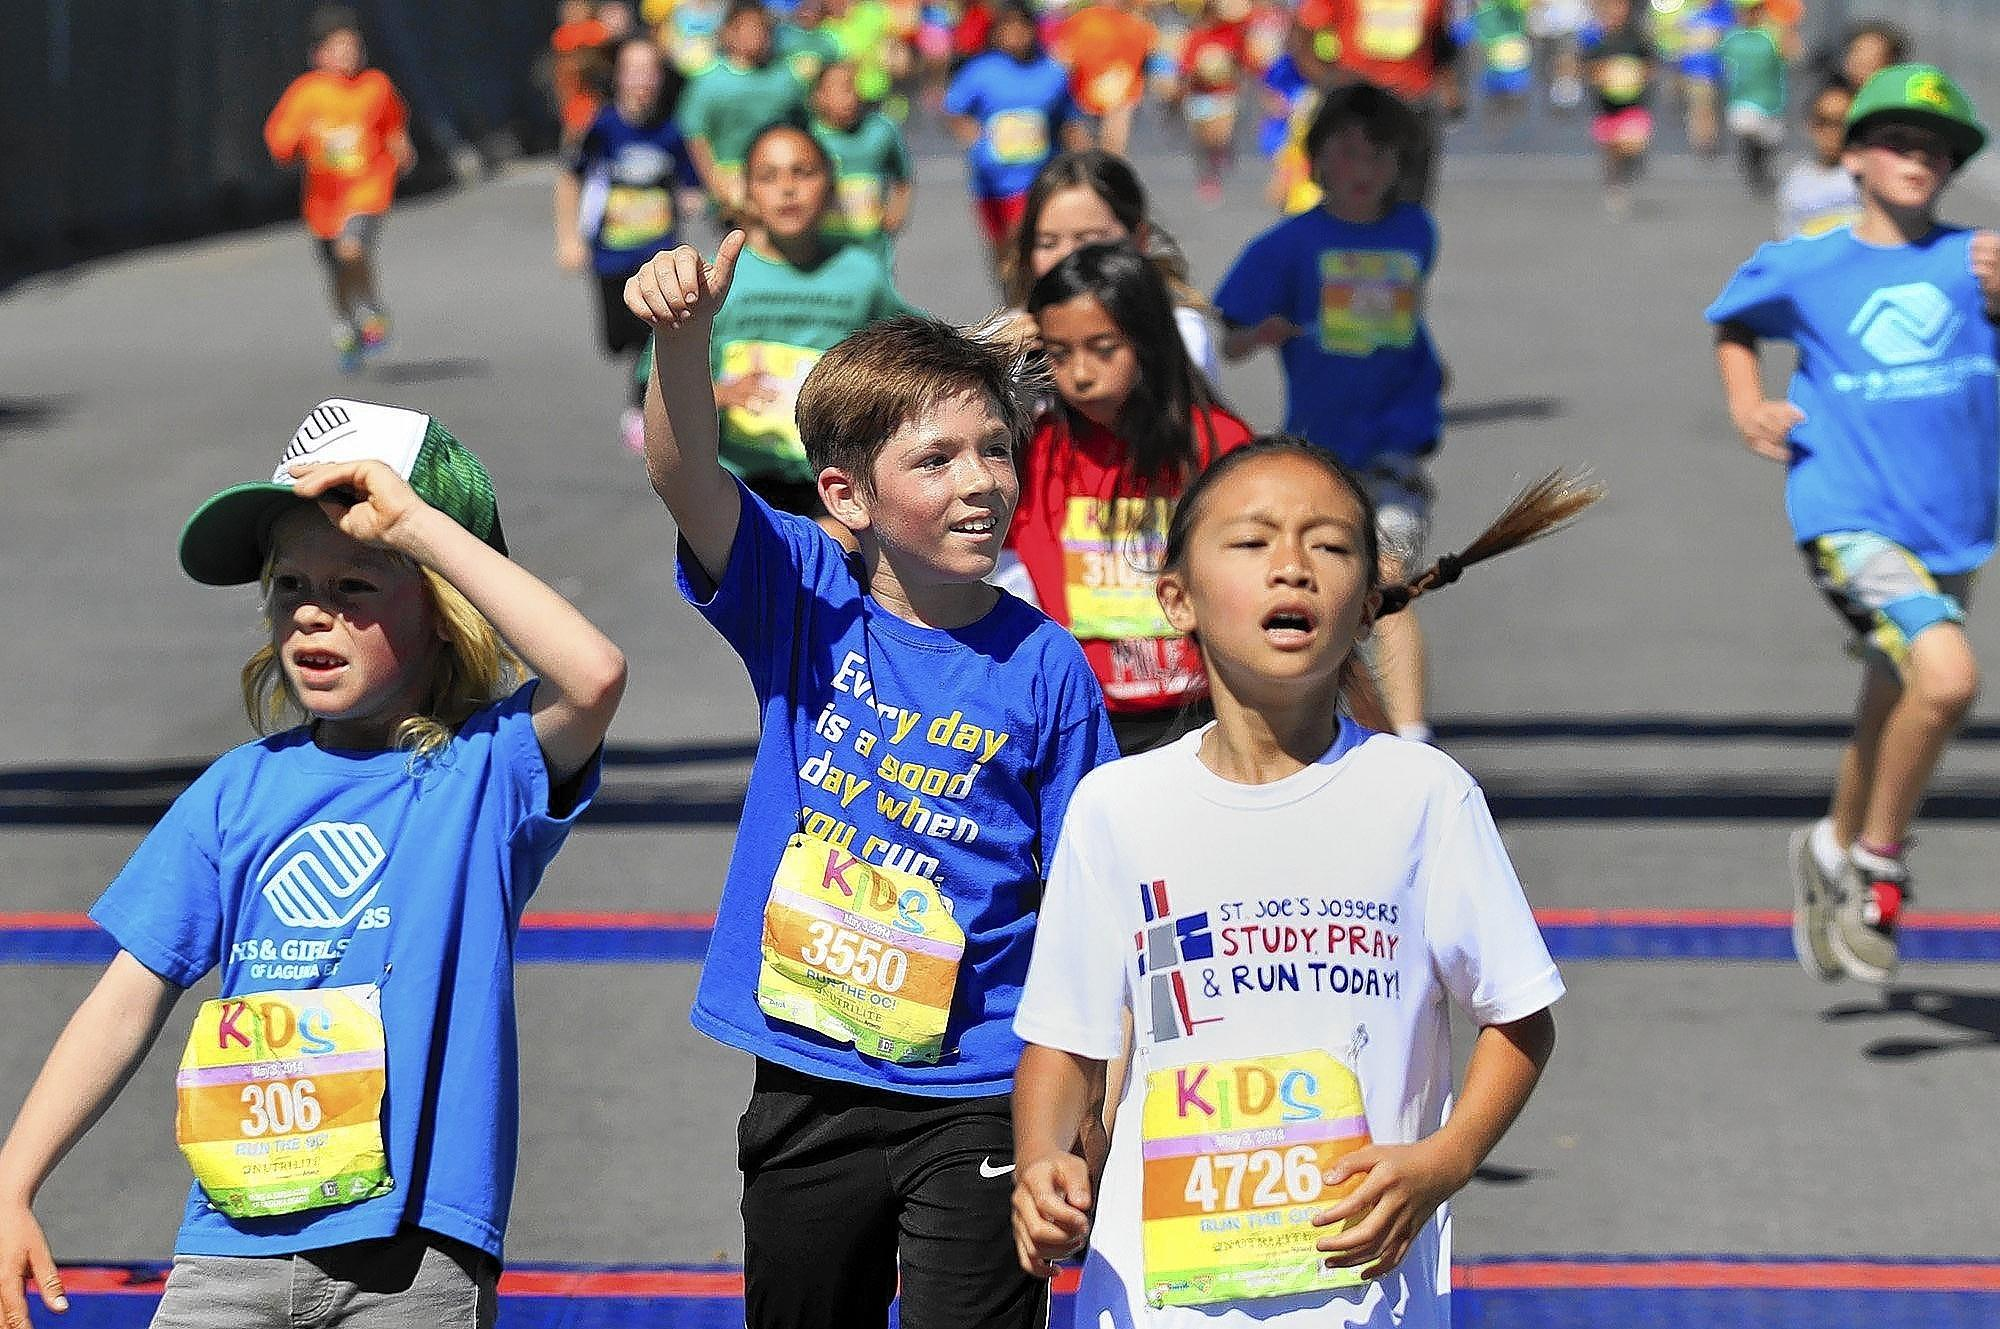 Gavin Yauchzee, 9, center, of Moffett Elementary school in Huntington Beach gives a thumbs up after finishing in the 2014 Kids Run the OC marathon held at the OC Fairgrounds on Saturday.